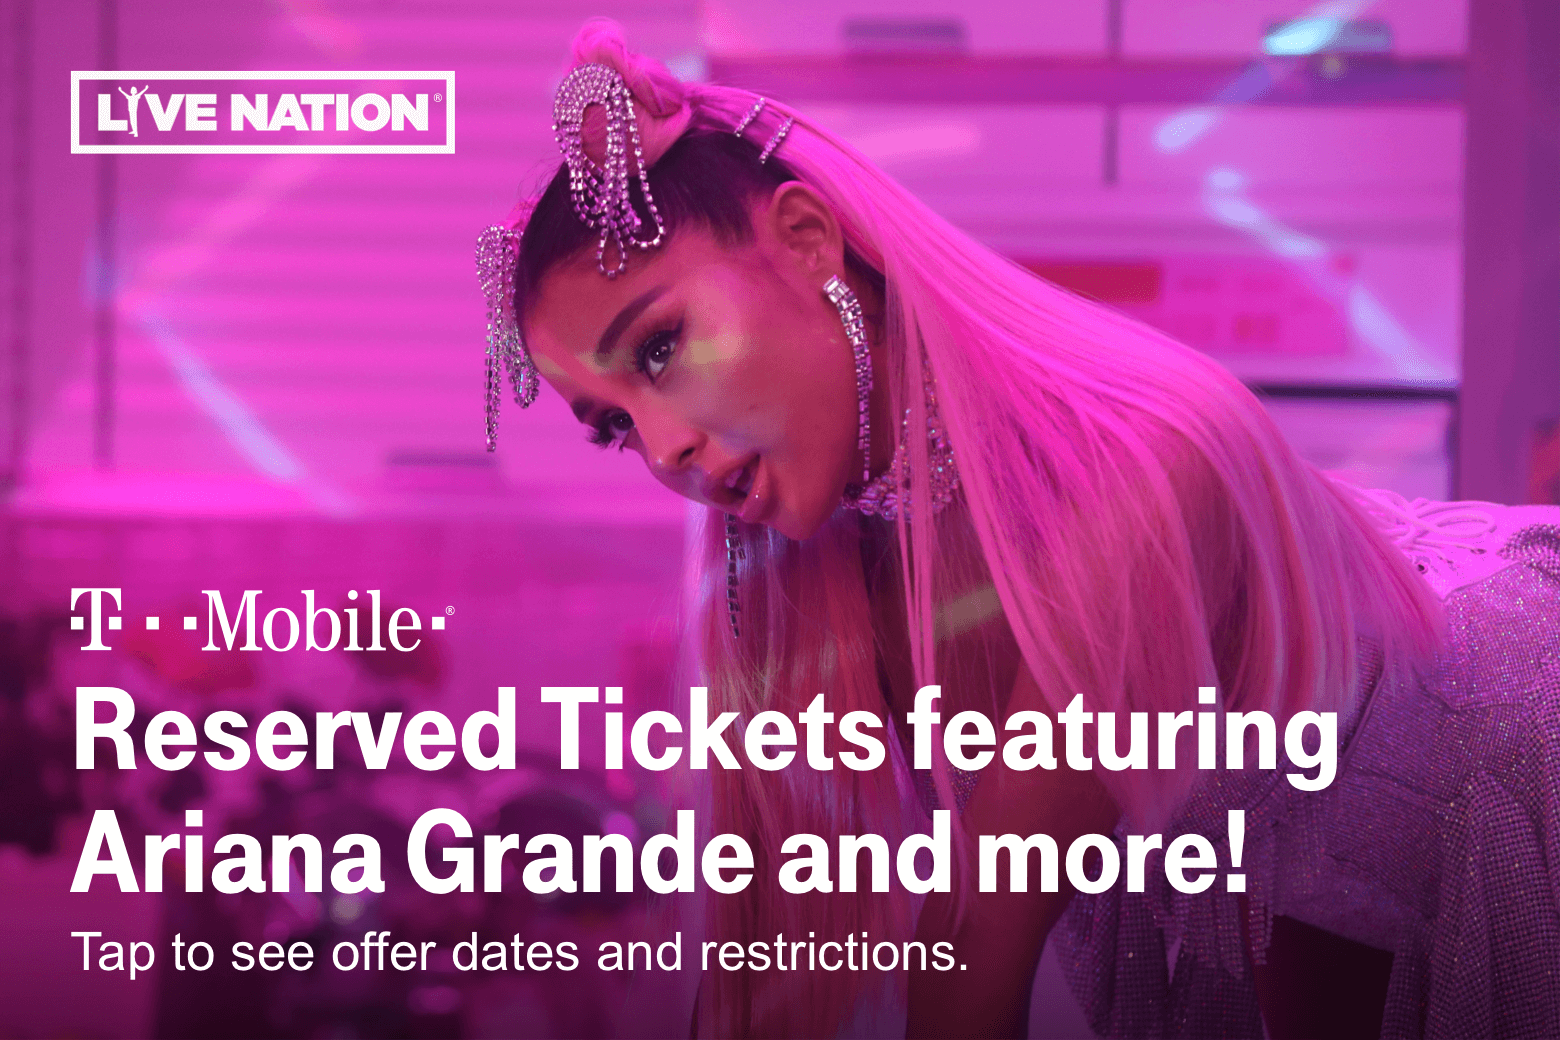 Live Nation. T-Mobile. Reserved Tickets featuring Ariana Grande and more! Tap to see offer dates and restrictions.